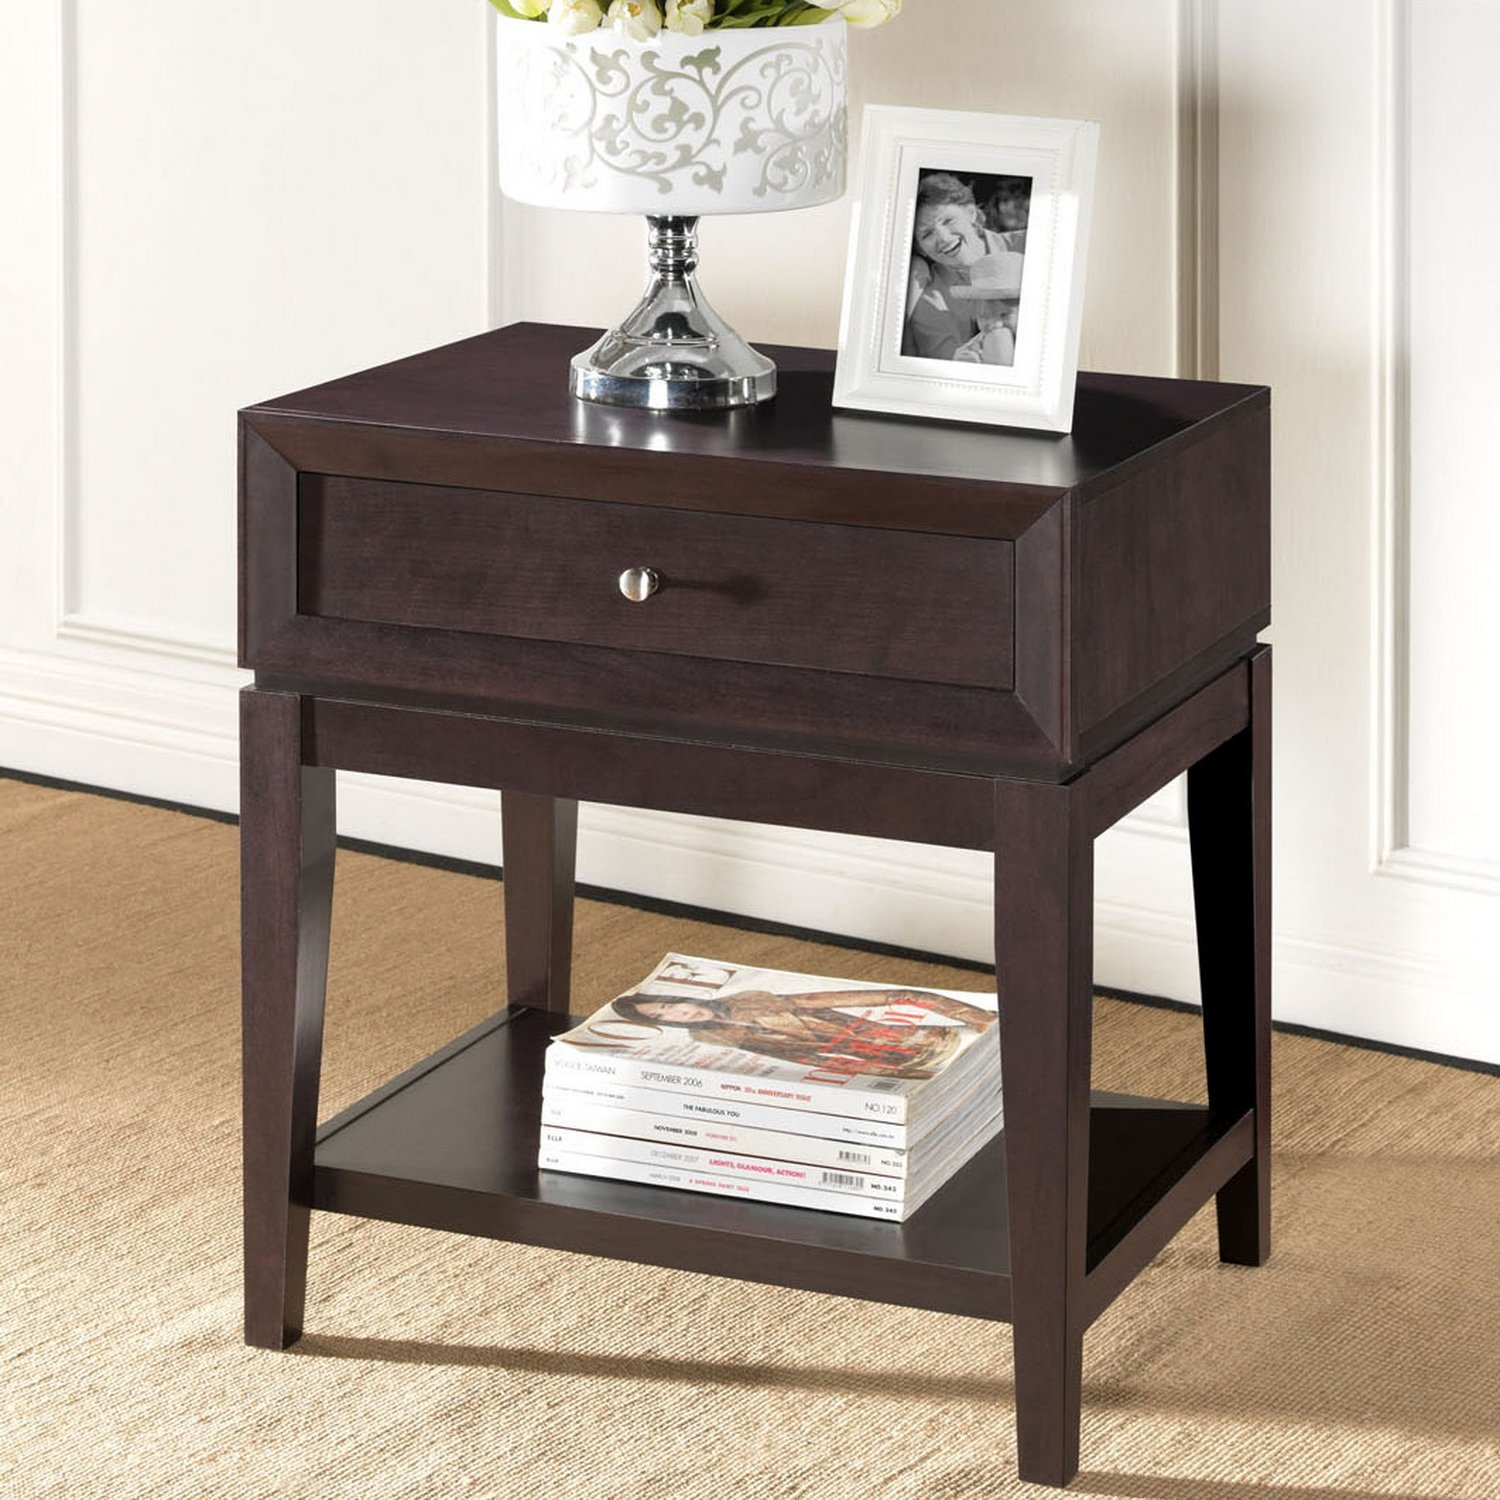 Amazon Baxton Studio Morgan Modern Accent Table and